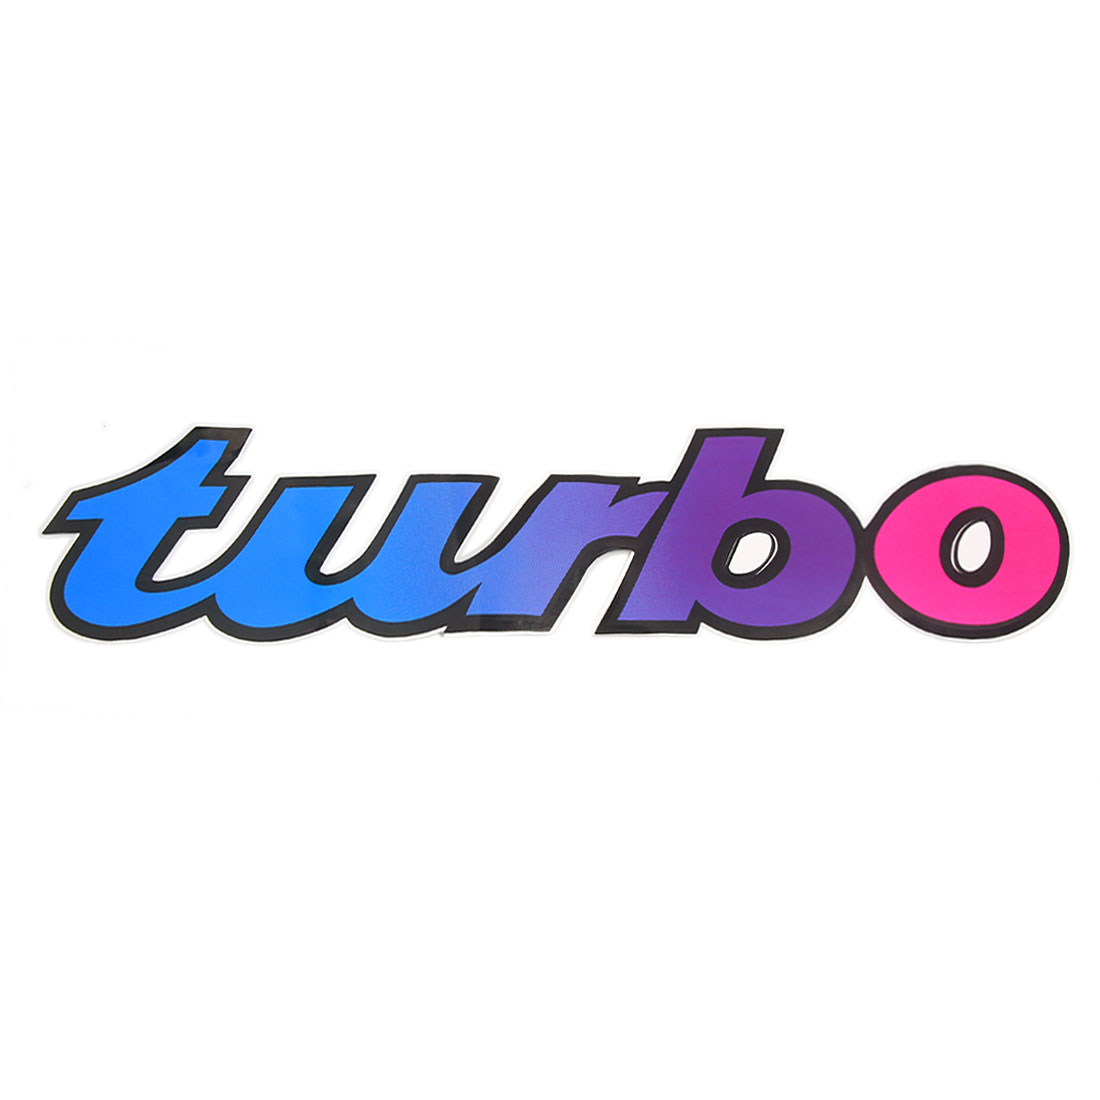 Blue Red Turbo Letter Decal Printed Styling Adhesive Removable Car Sticker